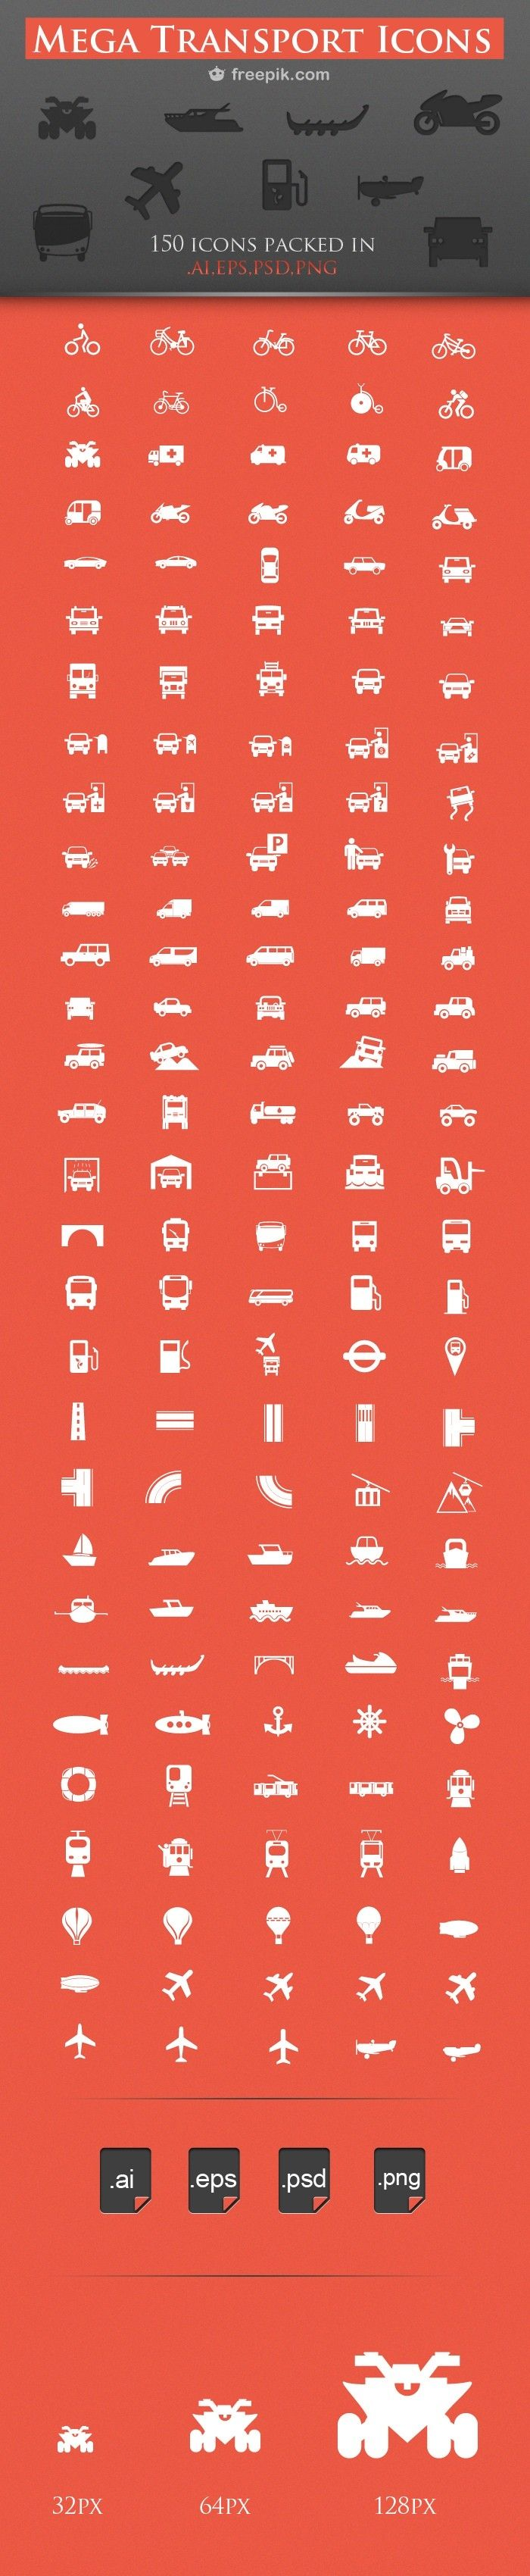 150 Royalty-Free Transport Icons Pack for Download